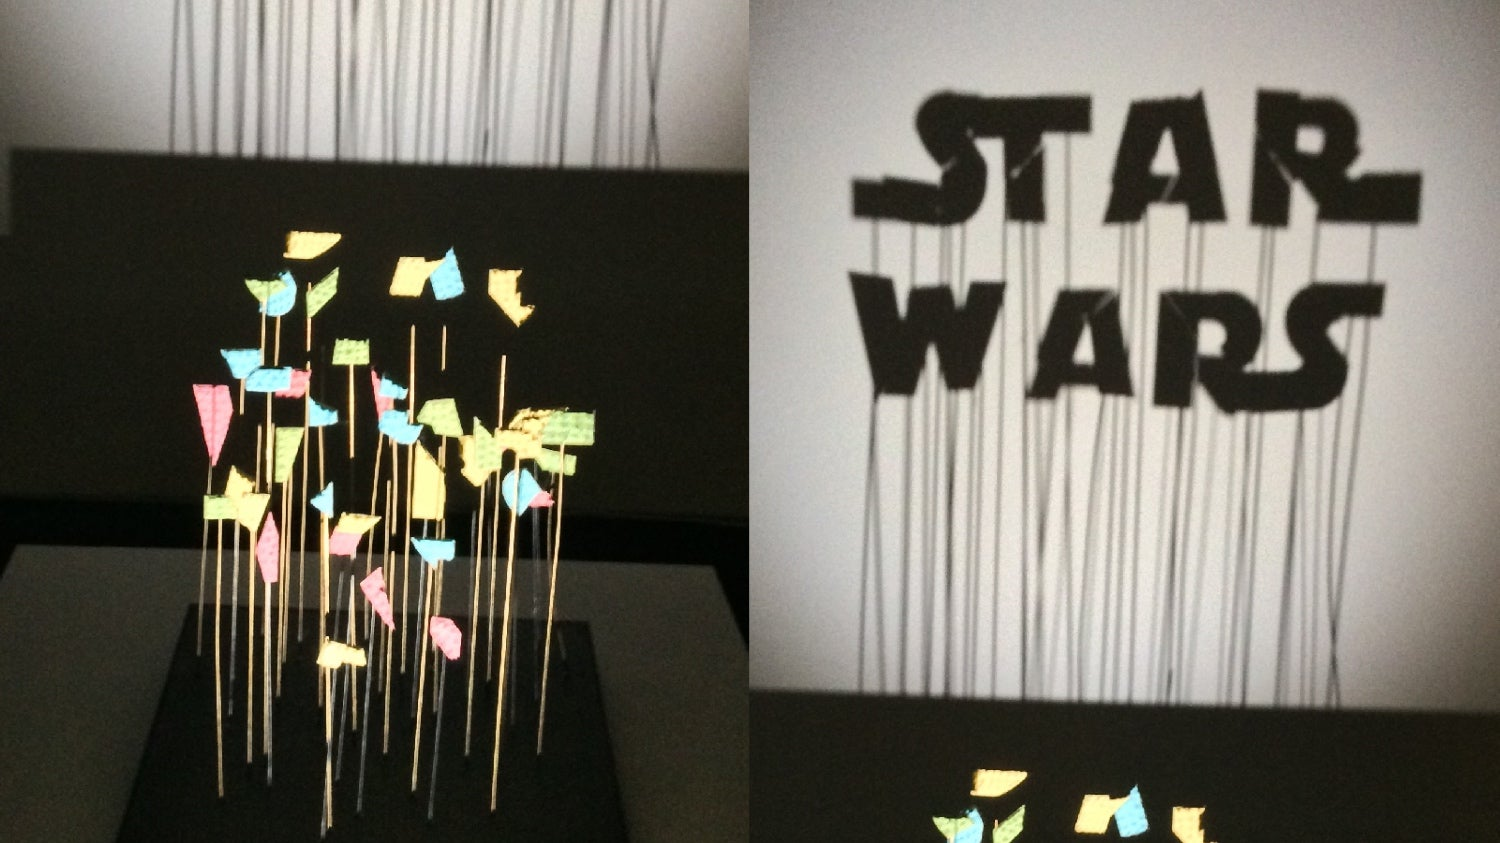 One Man's Trash Is Another Man's Fantastic Star Wars Art Exhibit